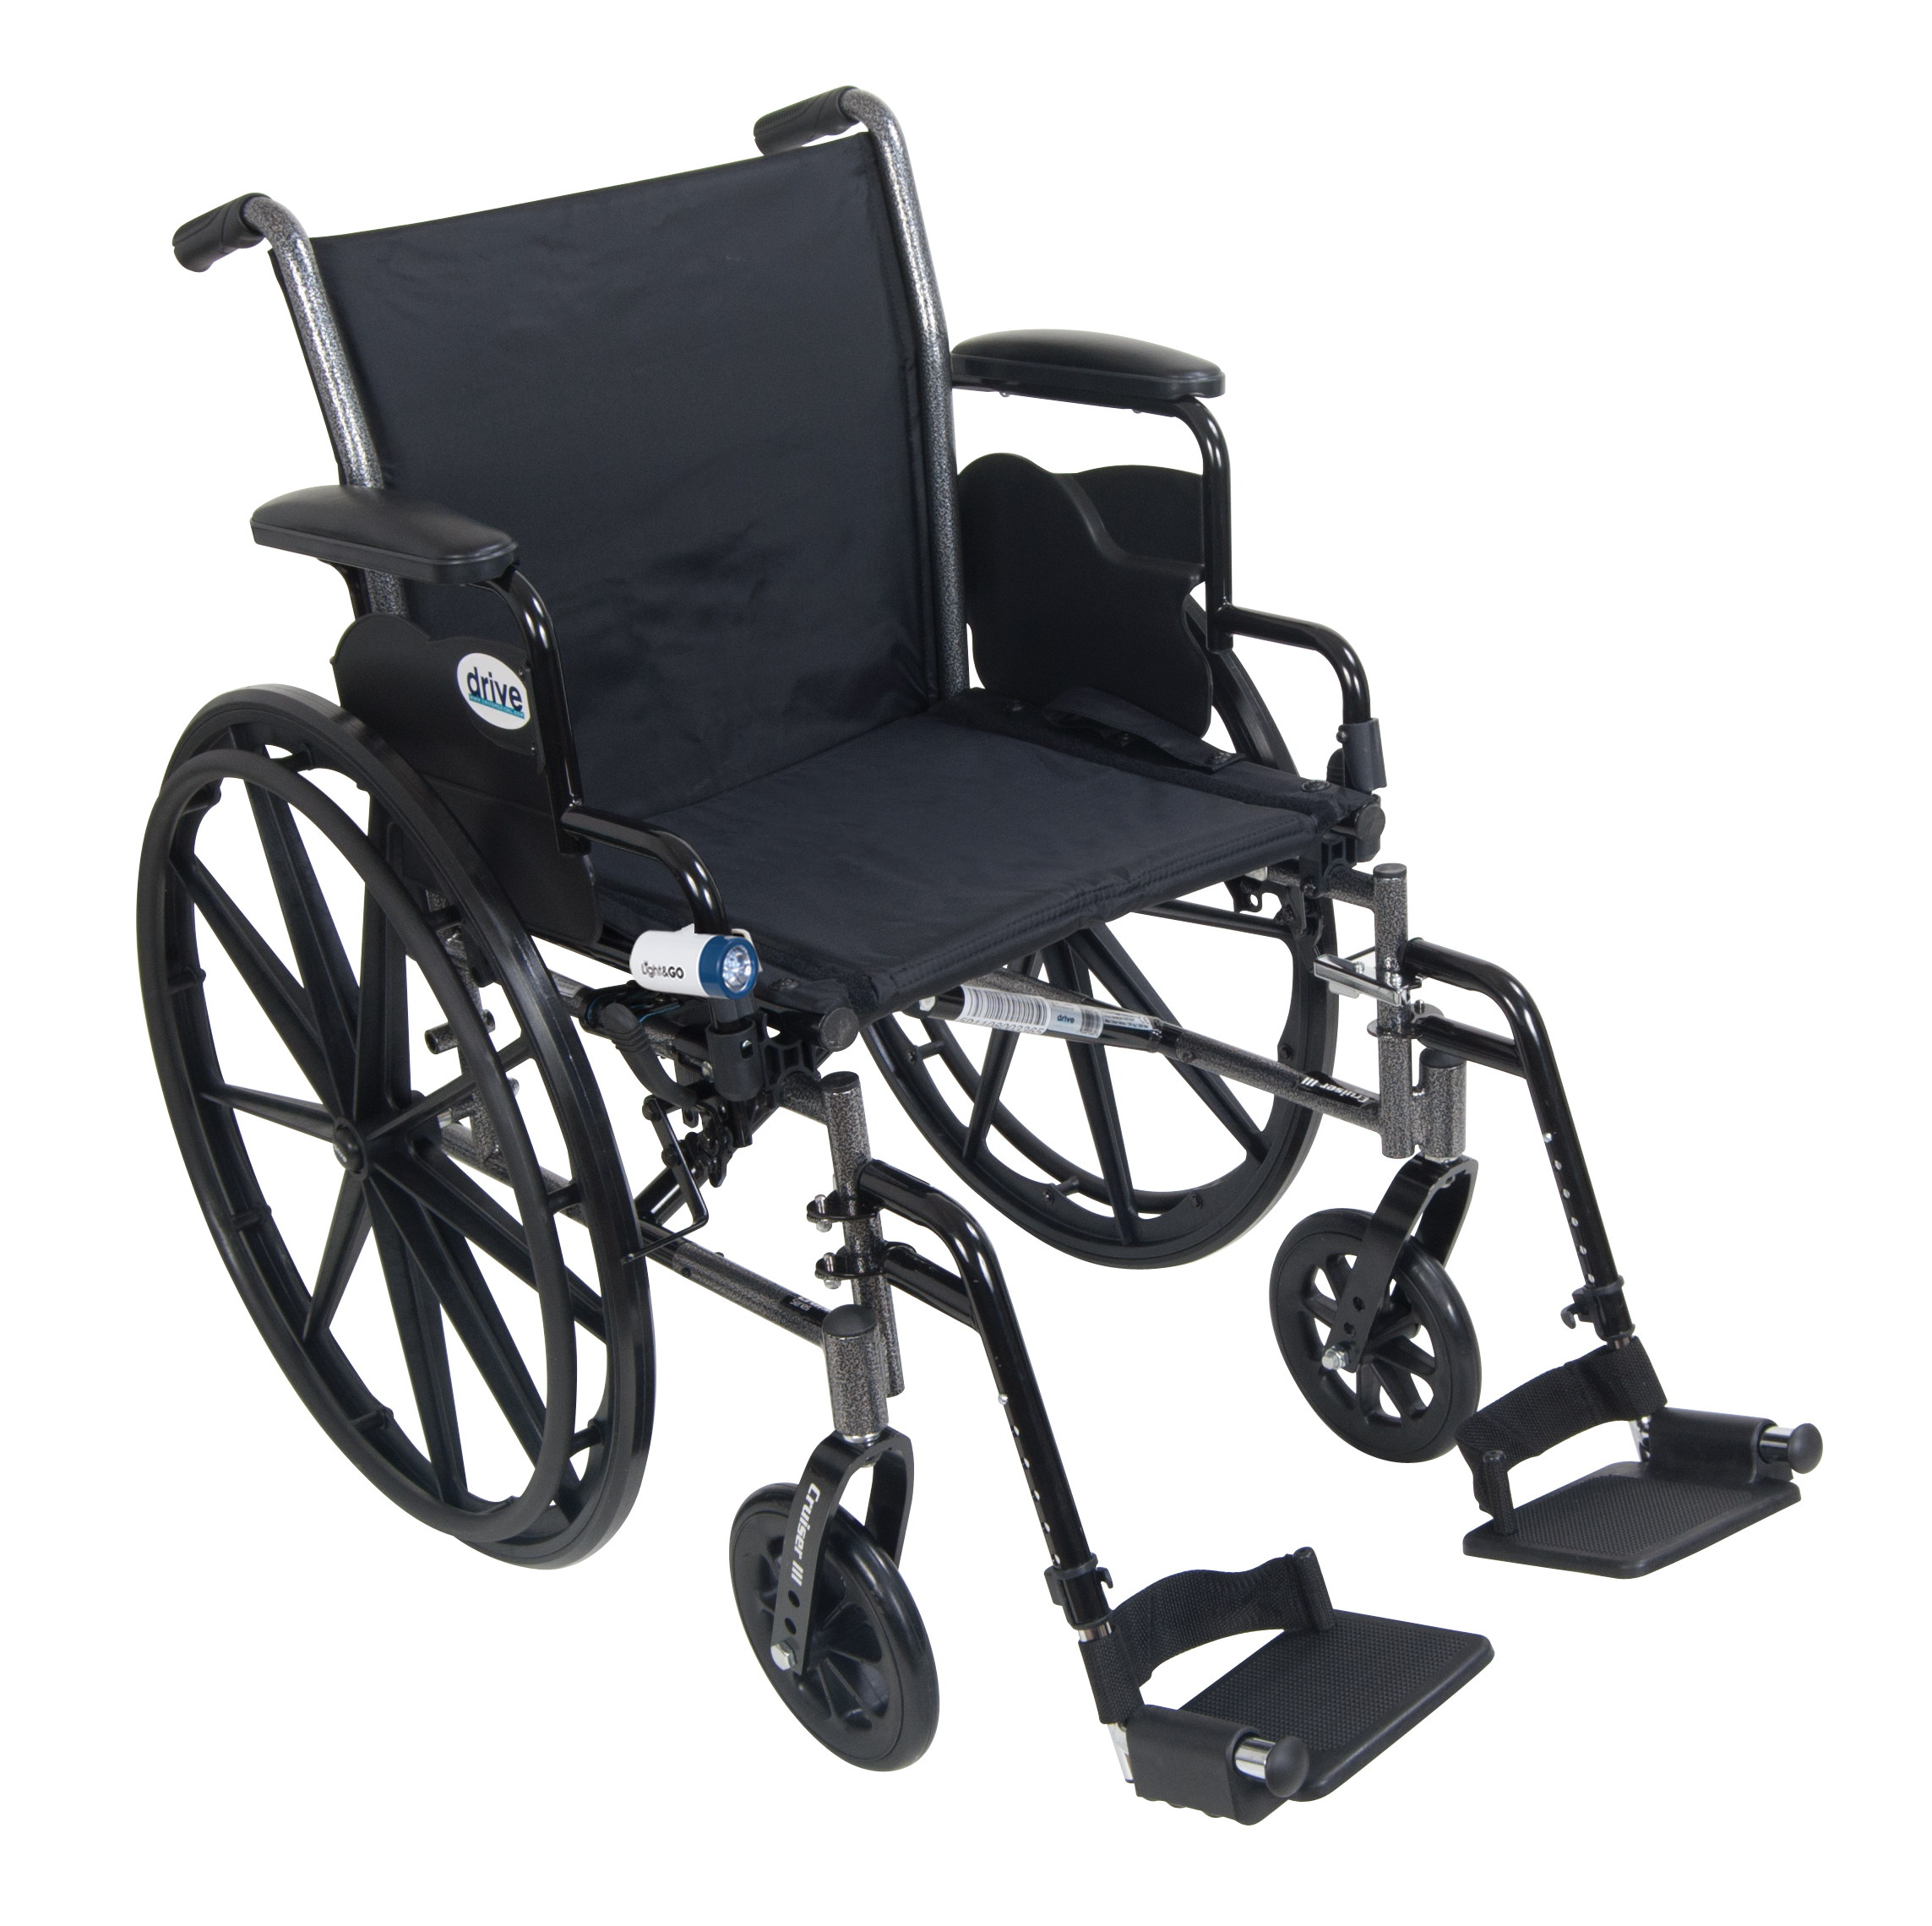 light-and-go-mobility-light-rtl1100-drive-medical-4.jpg